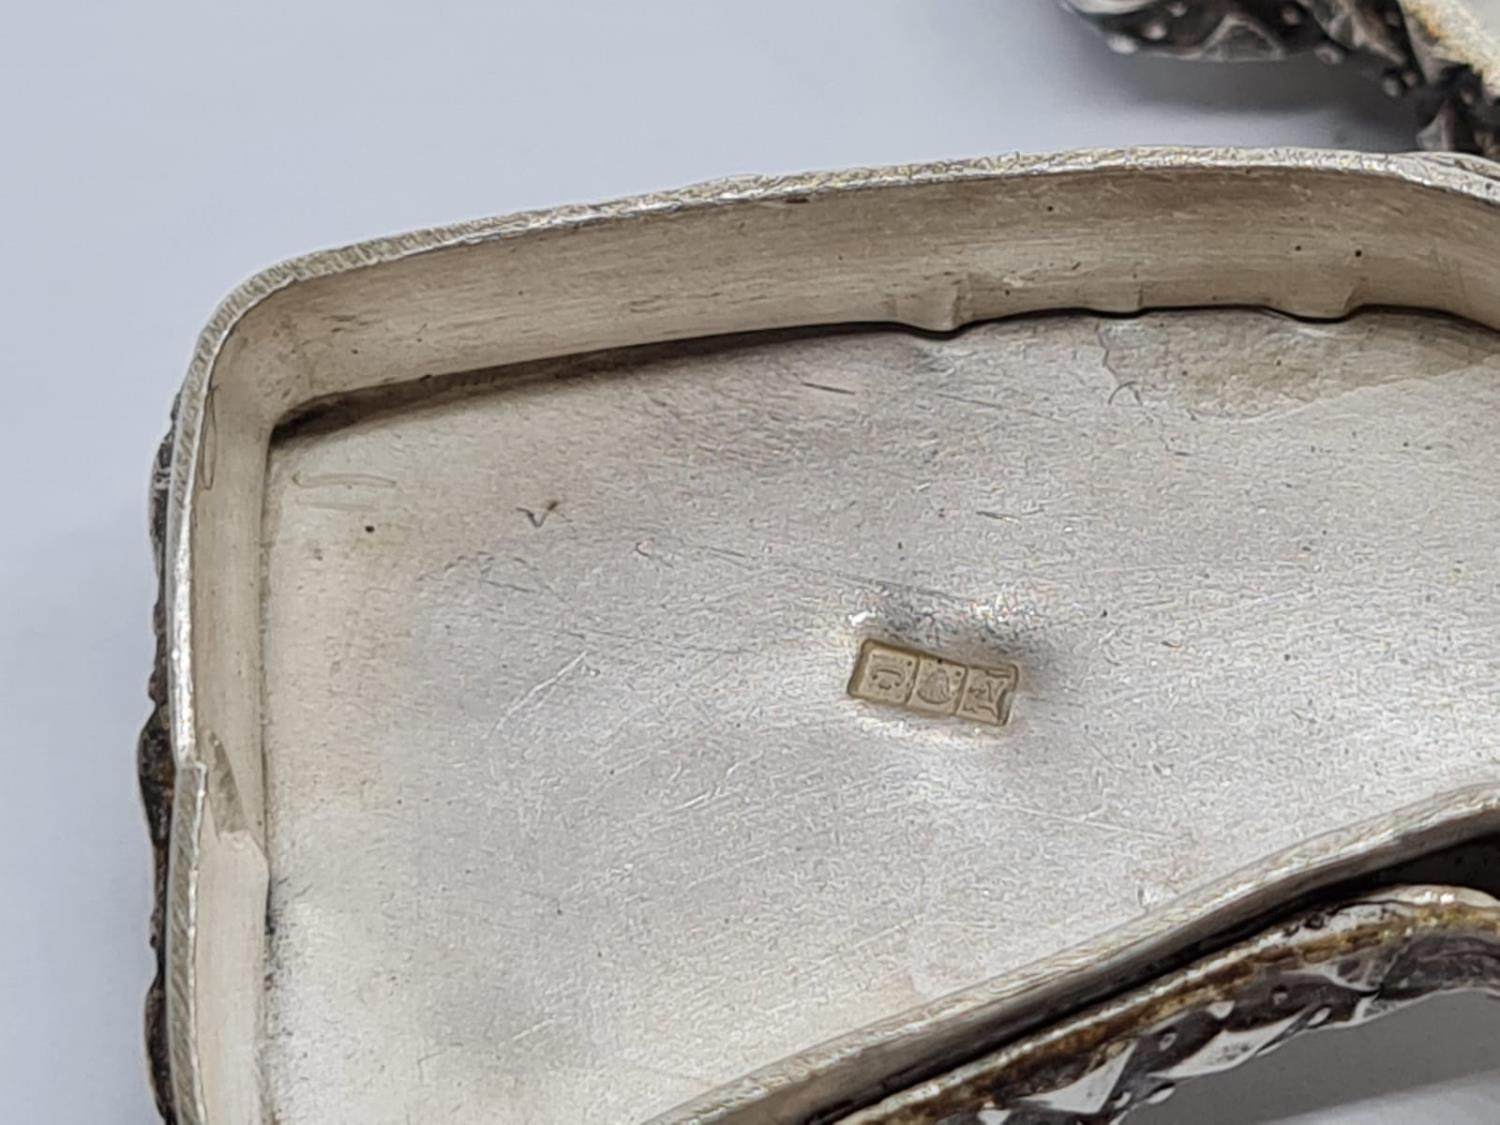 Novelty Islamic Silver Pill Box. In the form of Egyptian Nefertiti. 5.1 cm. 29g - Image 5 of 5